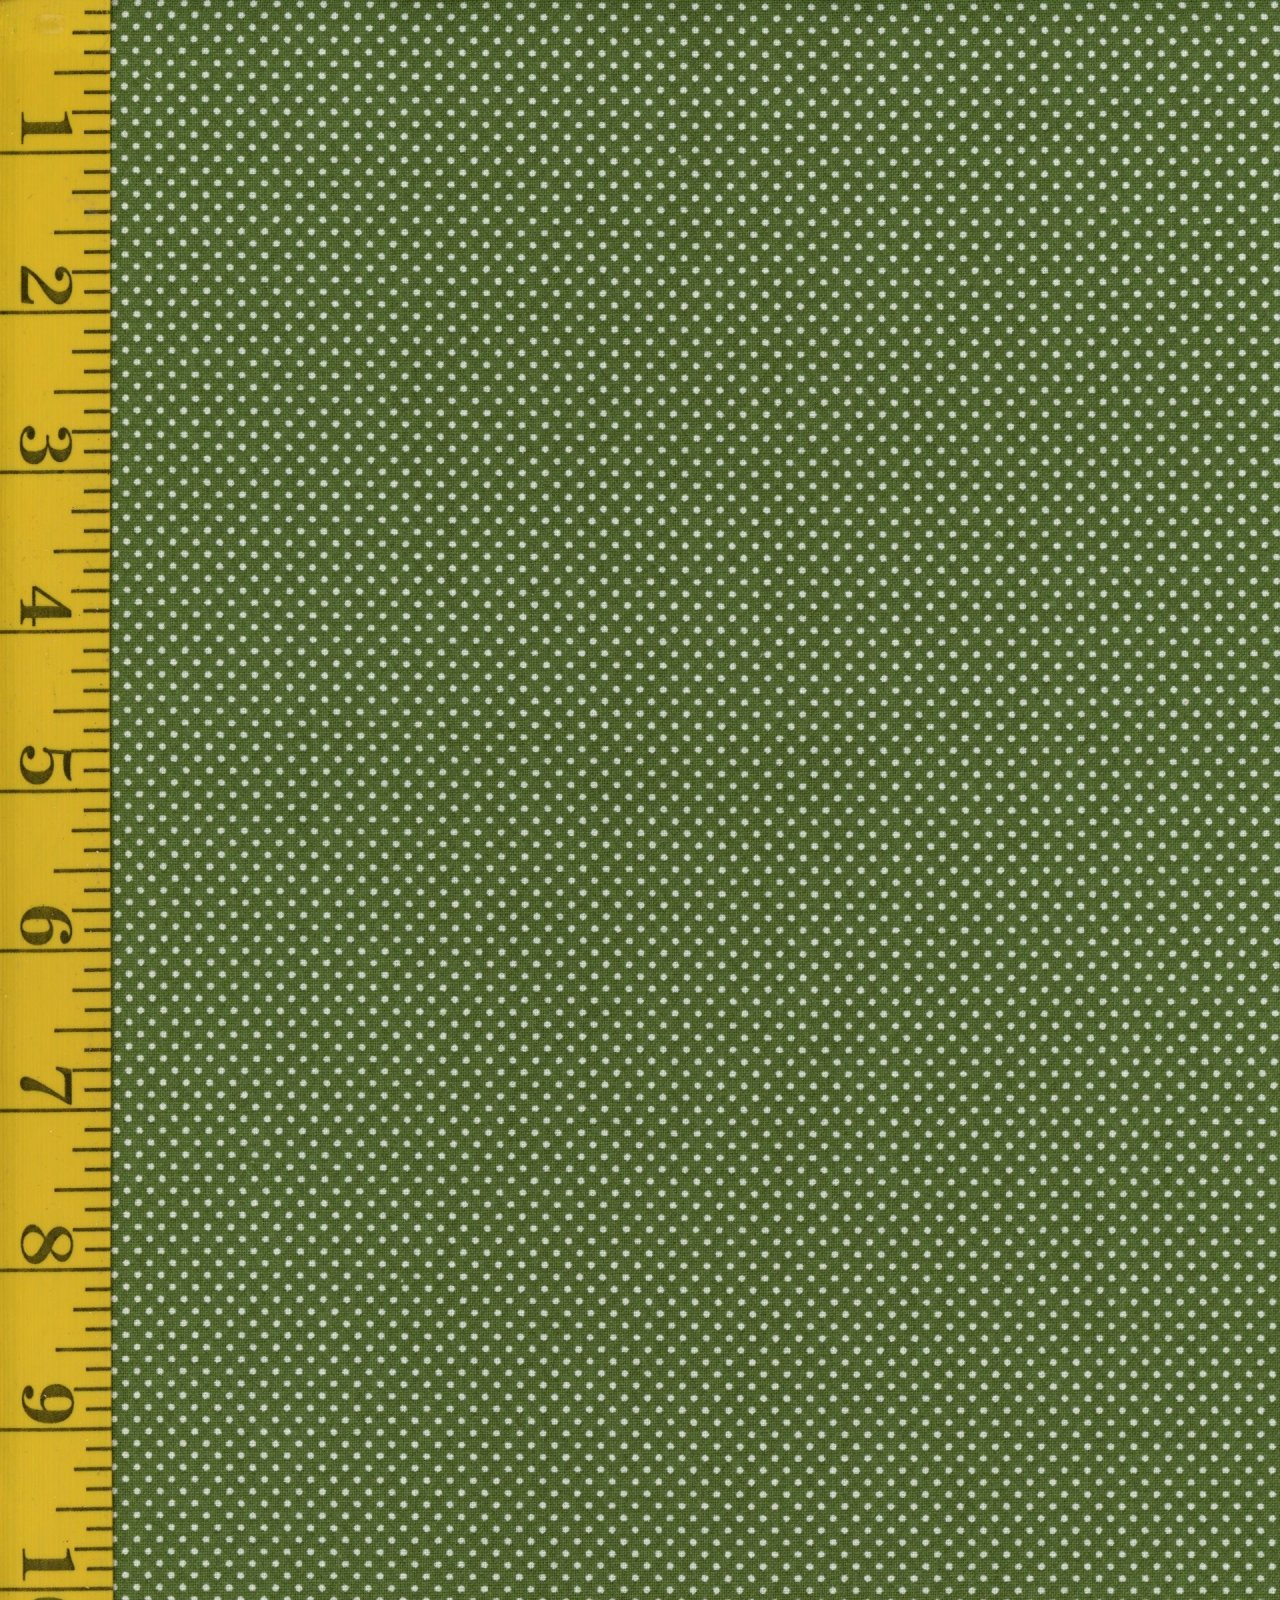 Garden Dots - Evergreen